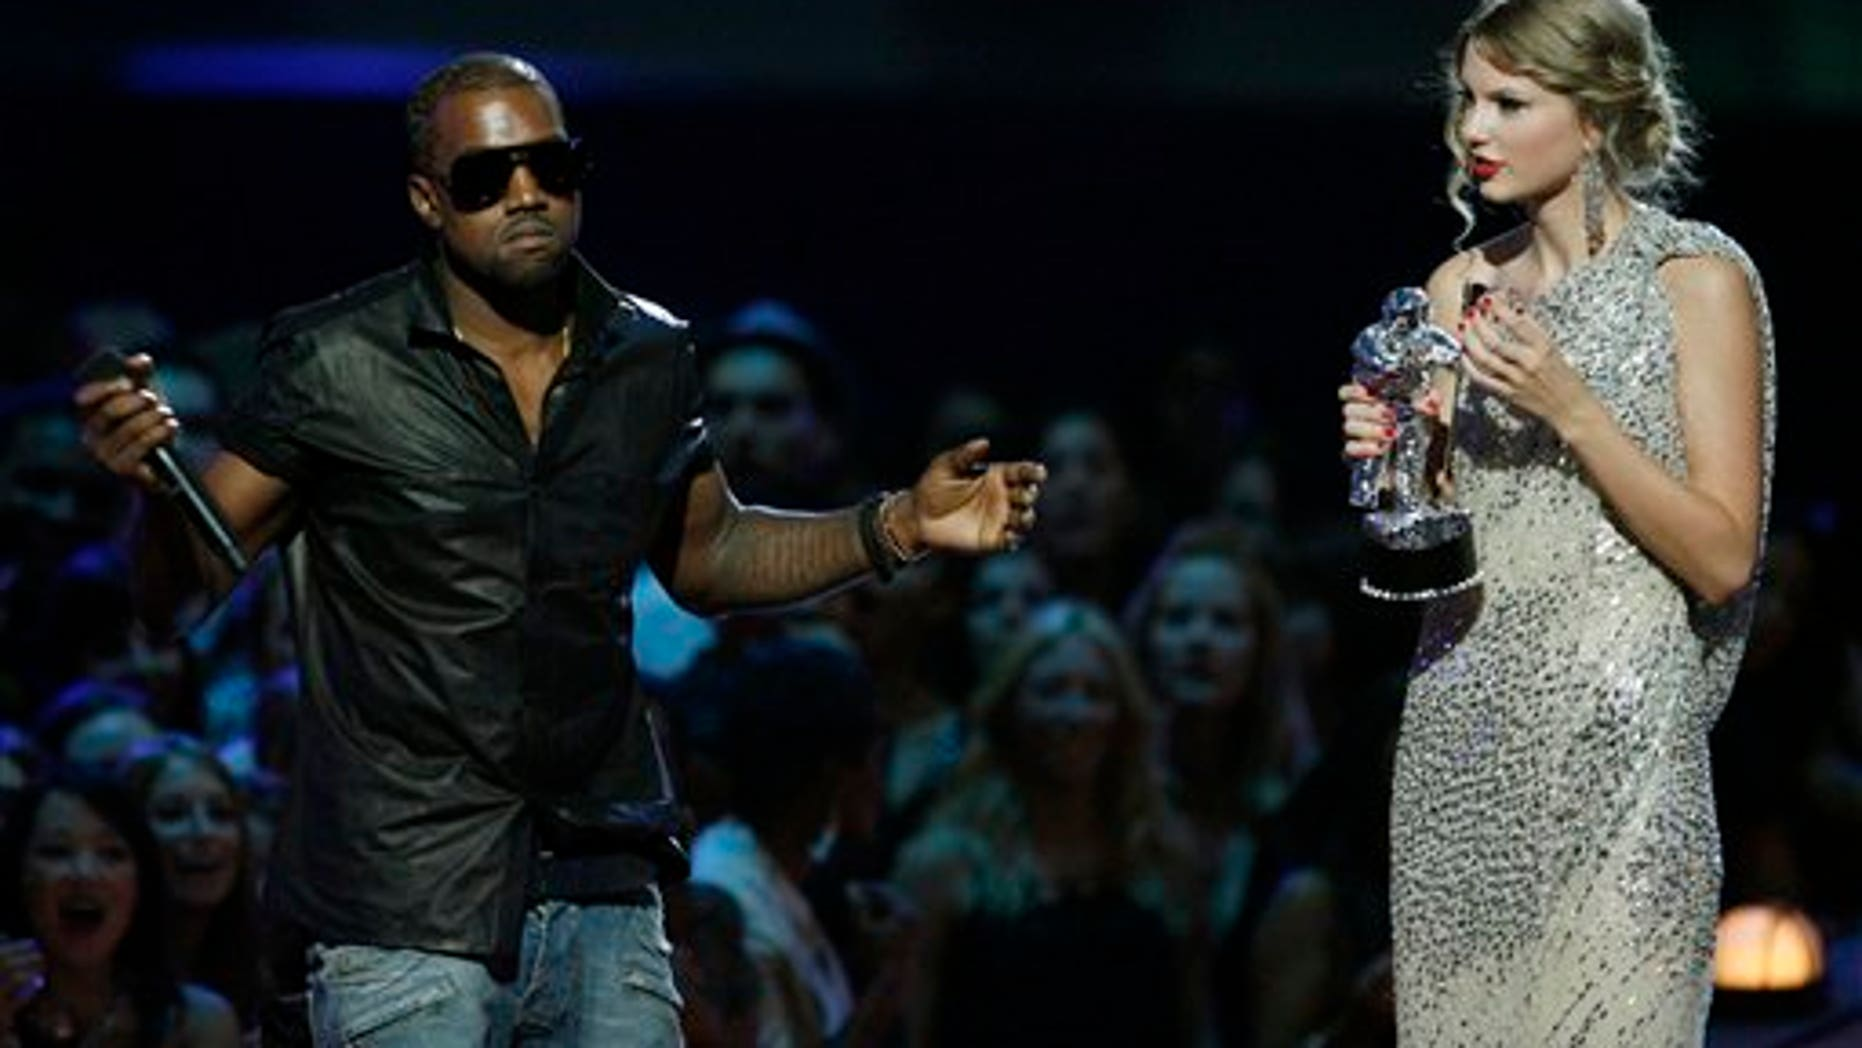 """Sept 13, 2009: Singer Kanye West takes the microphone from singer Taylor Swift as she accepts the """"Best Female Video"""" award during the MTV Video Music Awards."""